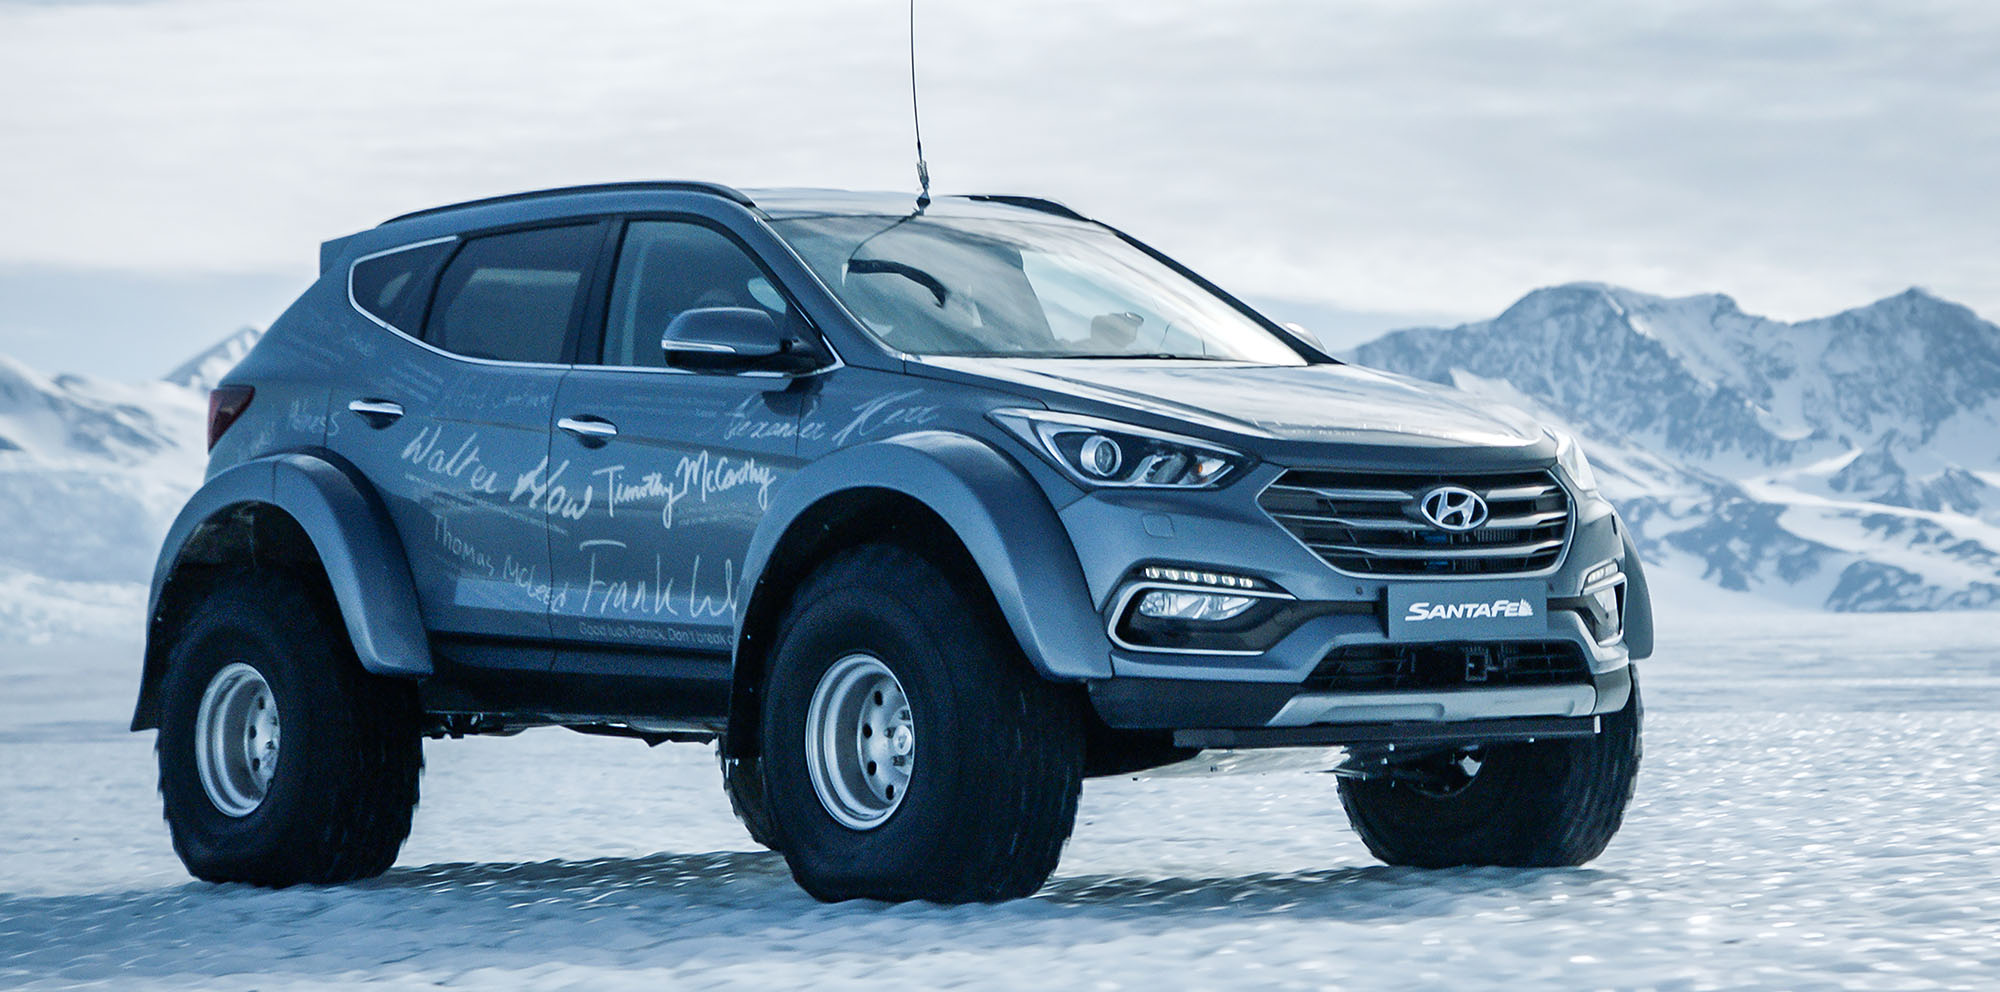 Hyundai Santa Fee Modified Hyundai Santa Fe Becomes First Car To Cross